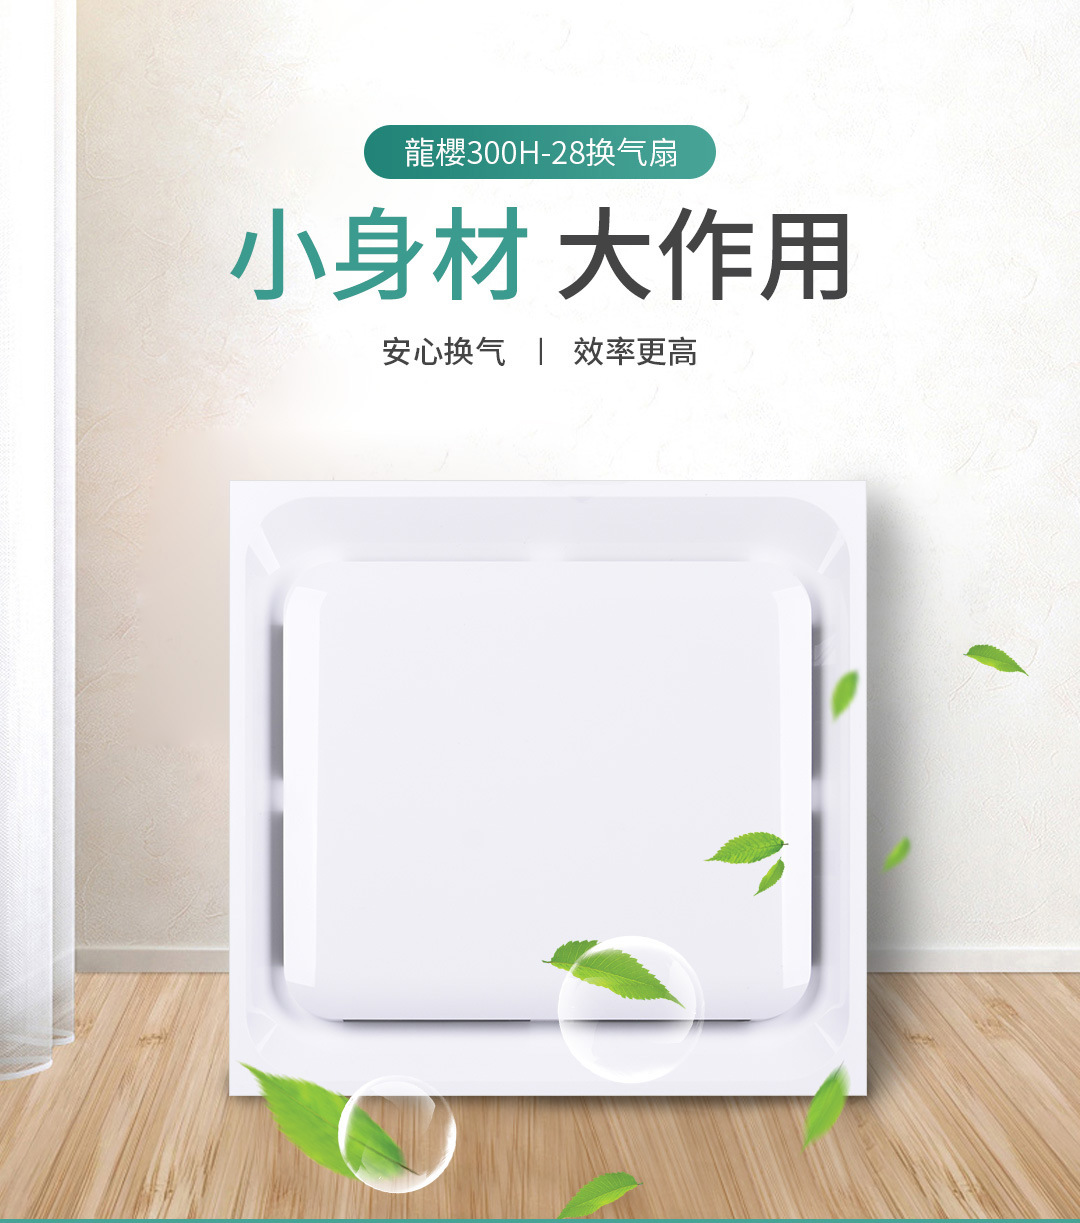 Dragon Sakura Bathroom Ventilator Integrated Ceiling Household Exhaust Fan Bathroom Fan Kitchen Mute Manufacturers Wholesale|Industrial Lighting| |  - title=